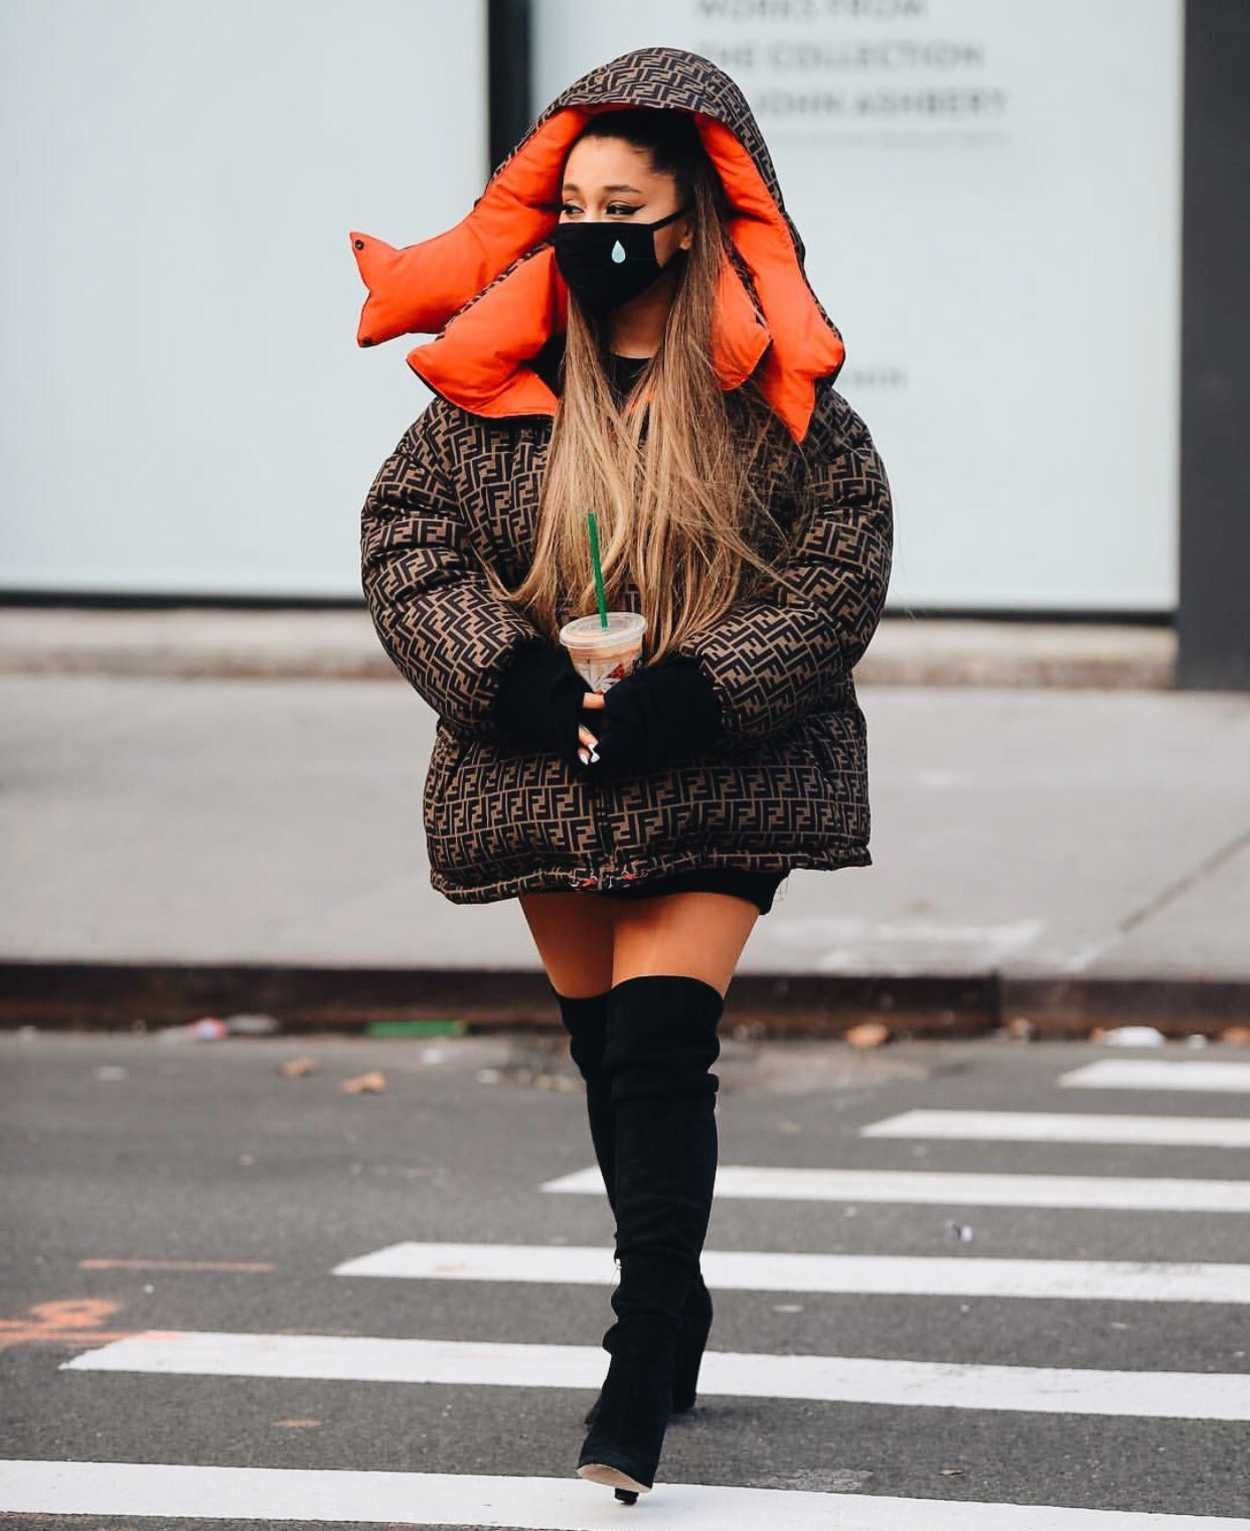 Ariana Grande In A Brown Fendi Puffer Jacket Was Seen Out In New York 01 01 2019 Celebsla Com Fendi Puffer Jacket Fashion Outfit Inspirations [ 1531 x 1250 Pixel ]